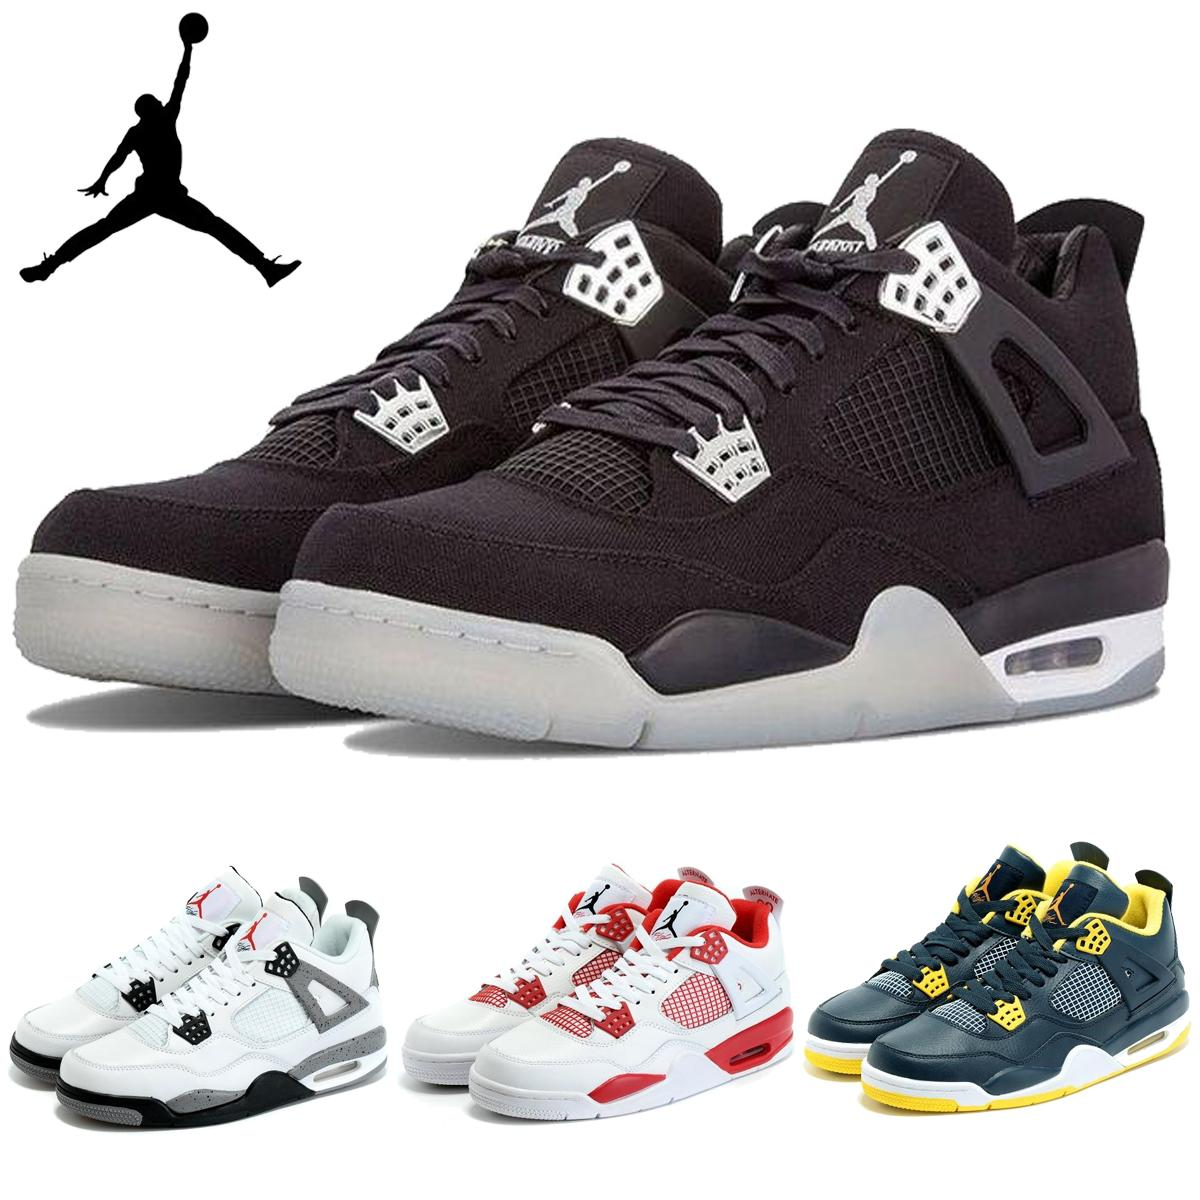 Nike Air Jordan 4 Iv Retro Alternate 89 White Black Gym Red Mens Basketball  Shoes Sports Aj4 Jordan Shoes Jordans J4 Sneakers Basketball Mens Shoes  From ...